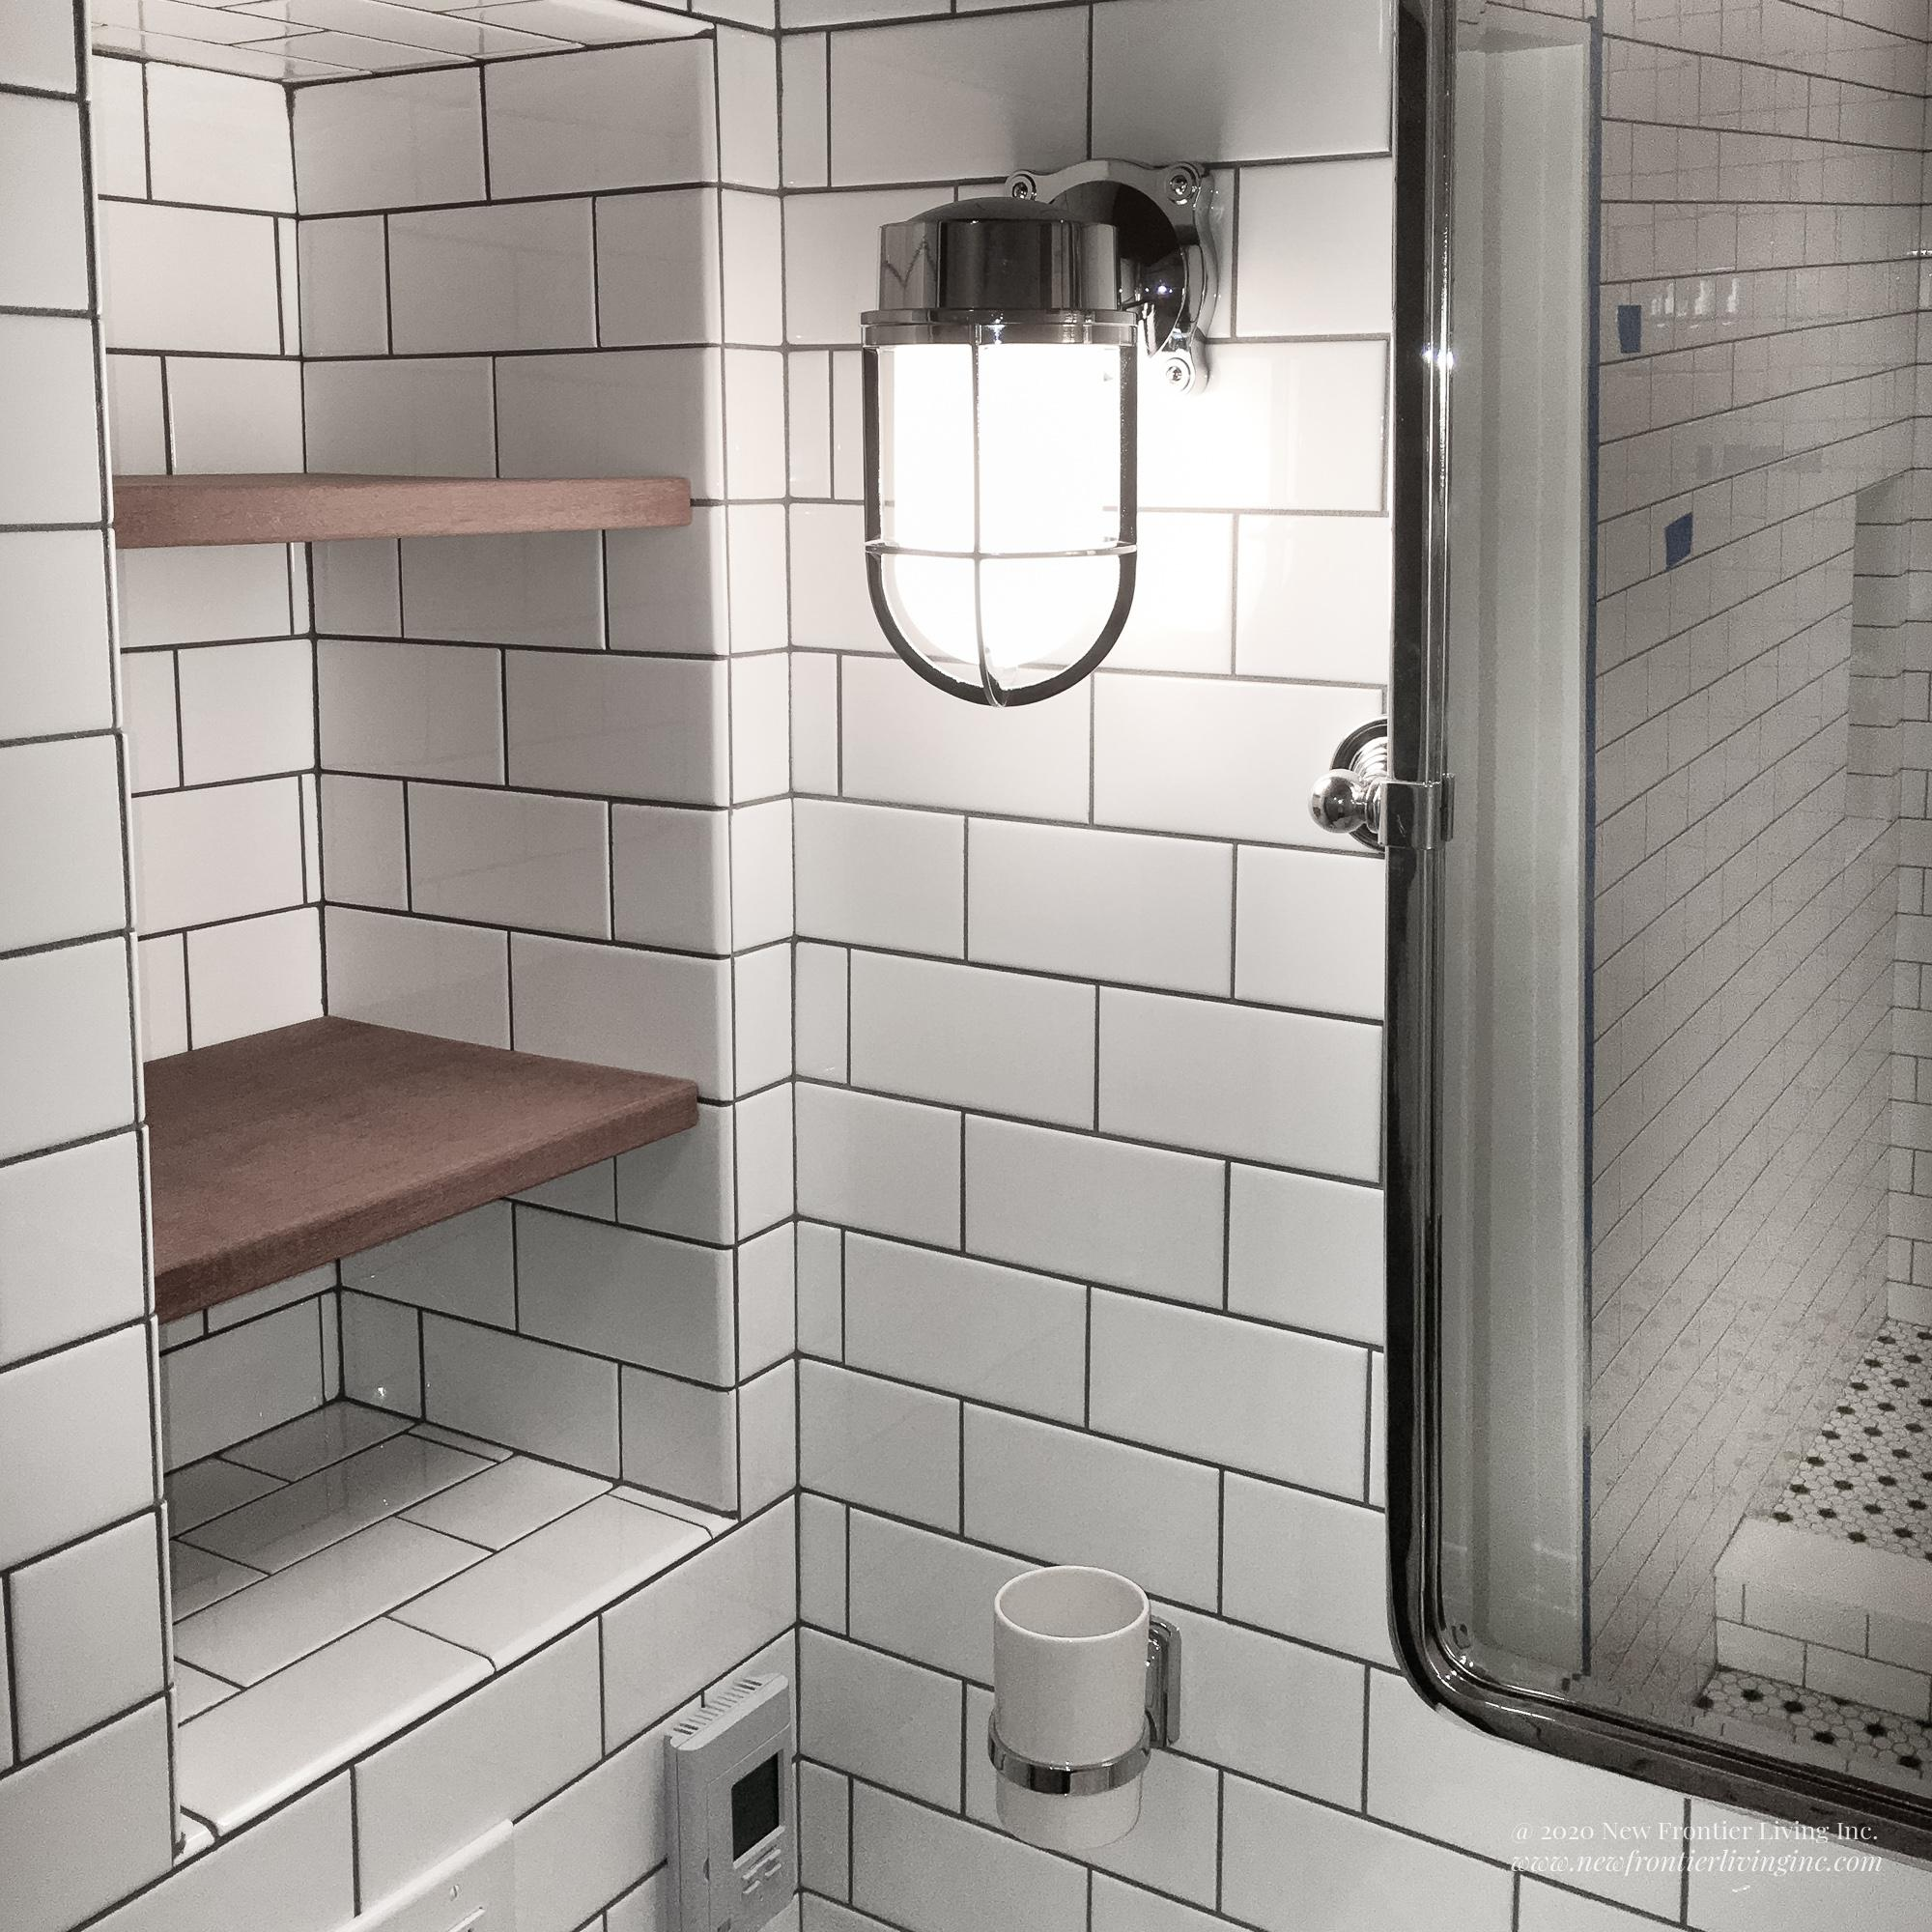 Traditional white ceramic bathroom shelves and cup holder